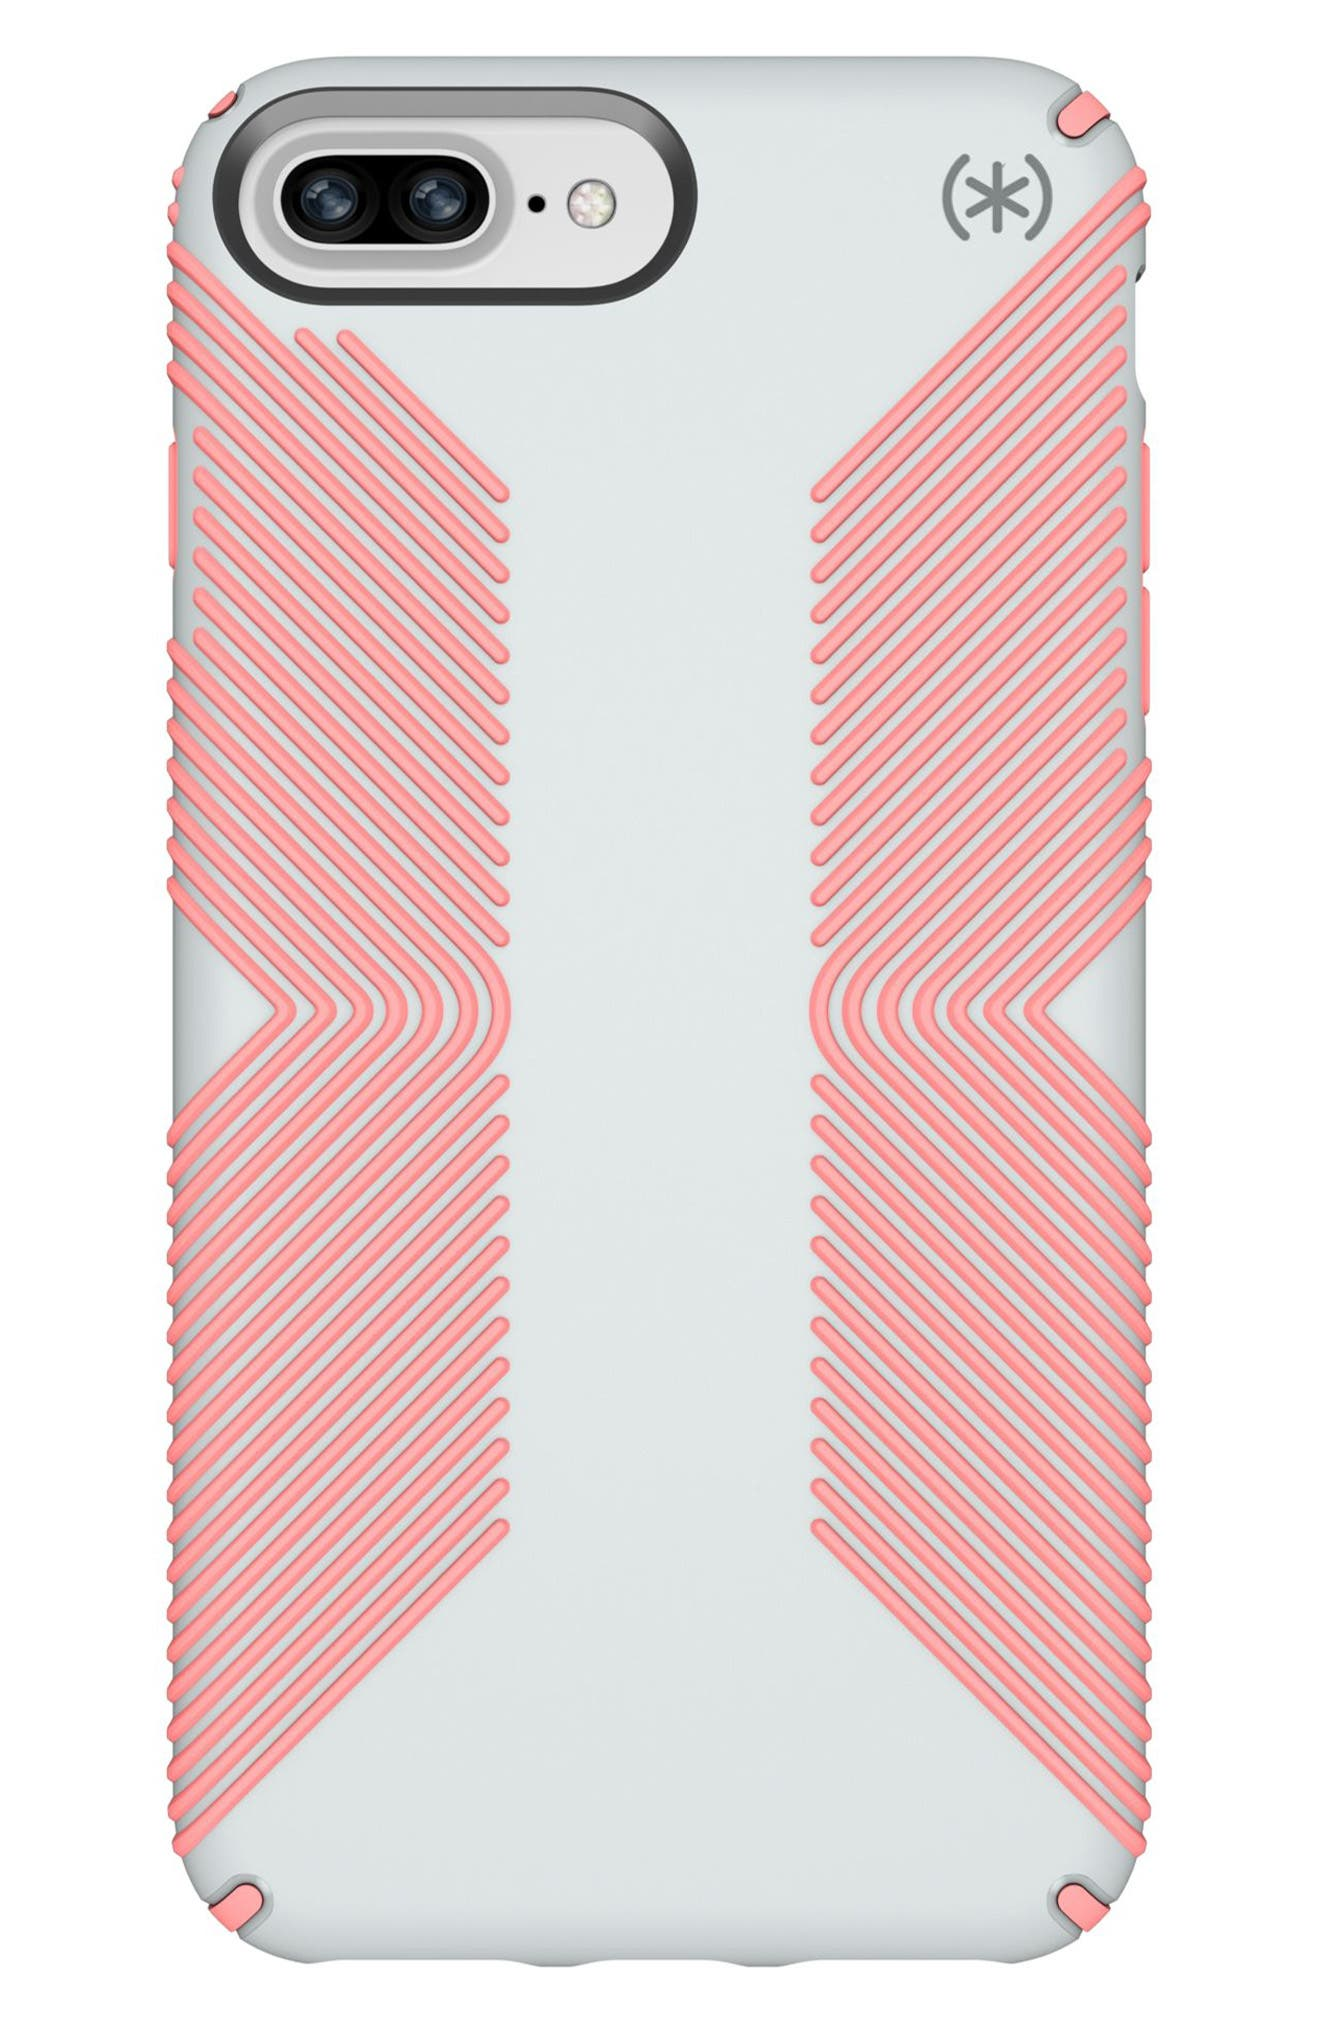 Grip iPhone 6/6s/7/8 Plus Case,                         Main,                         color, Dove Grey/ Tart Pink